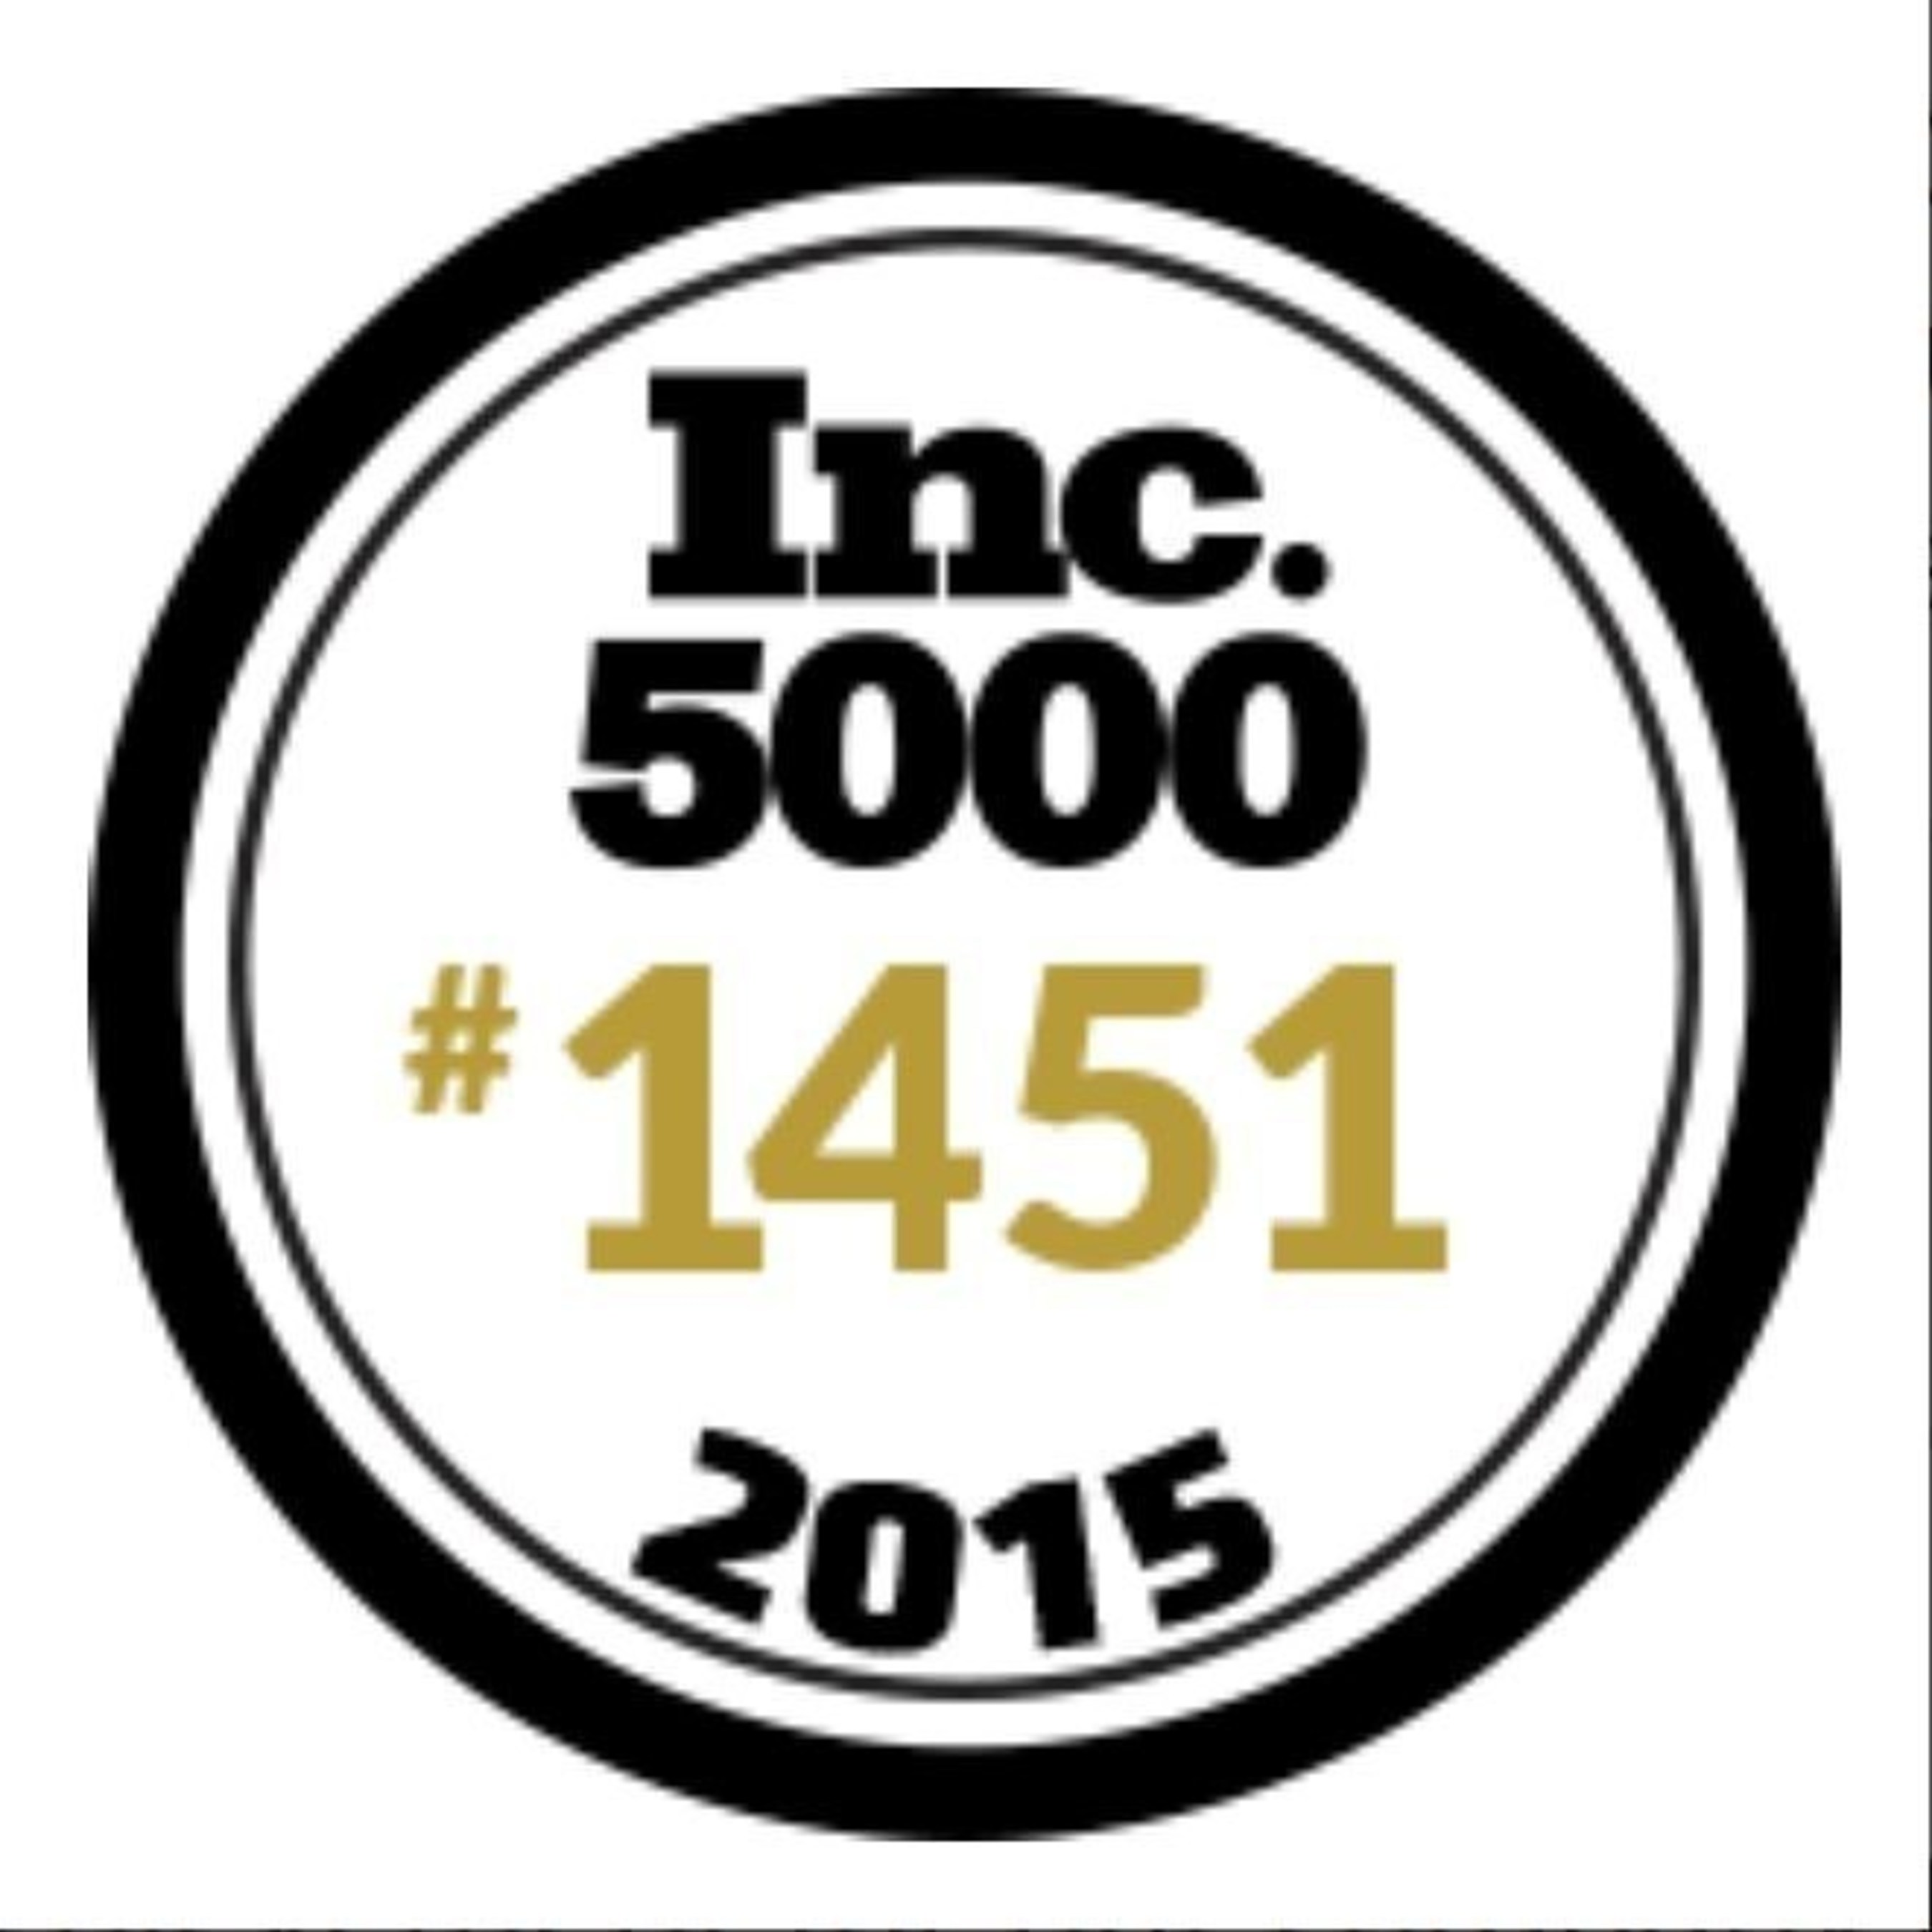 IdentiCom Sign Solutions Is Honored on the Inc. 5000 List of Fastest Growing Companies